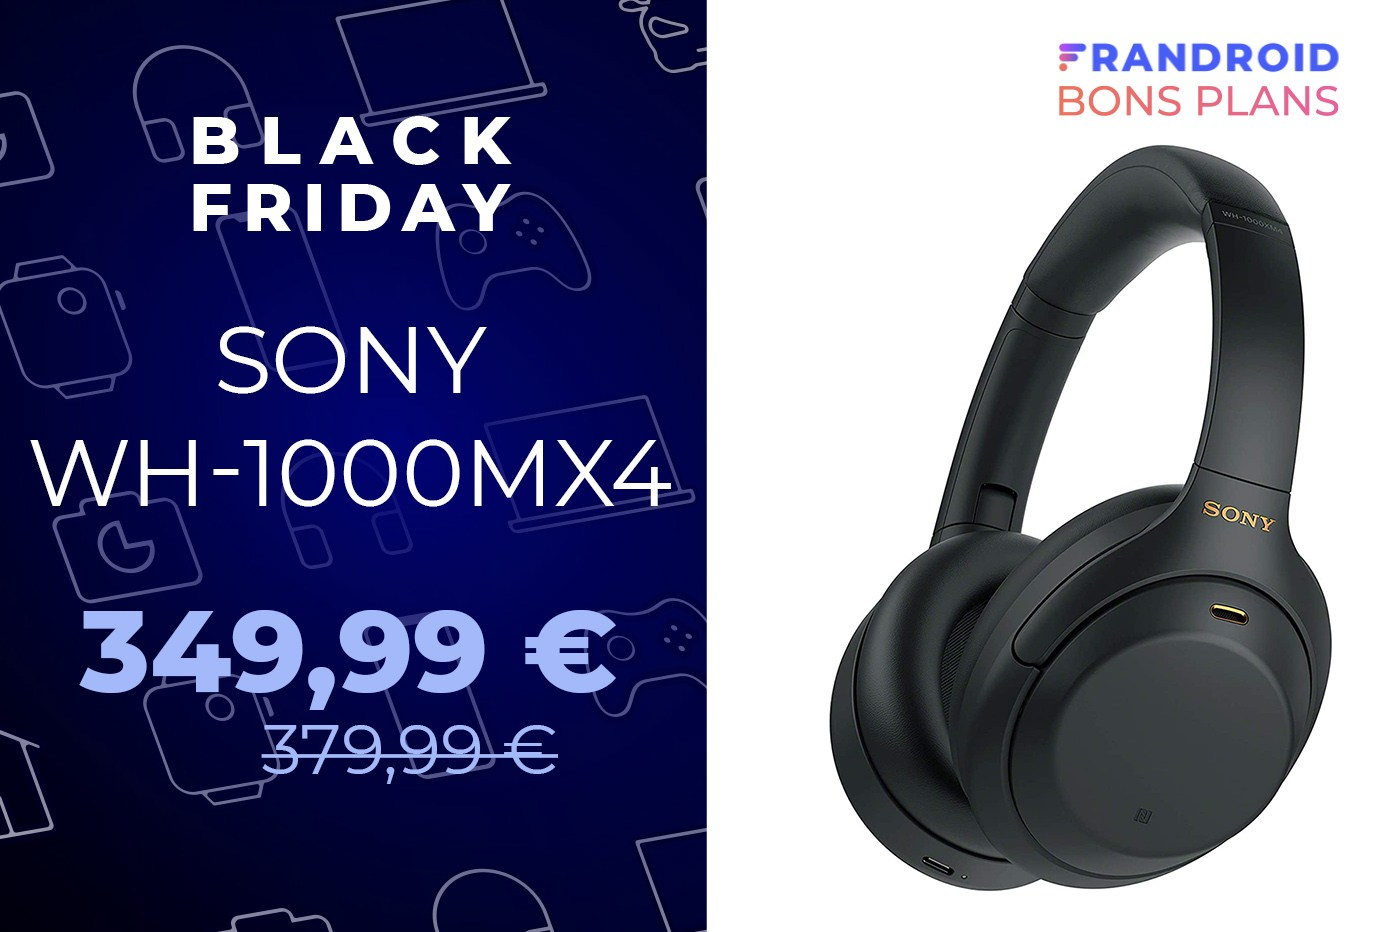 Une baisse de prix pour le Sony WH-1000XM4 pendant le Black Friday